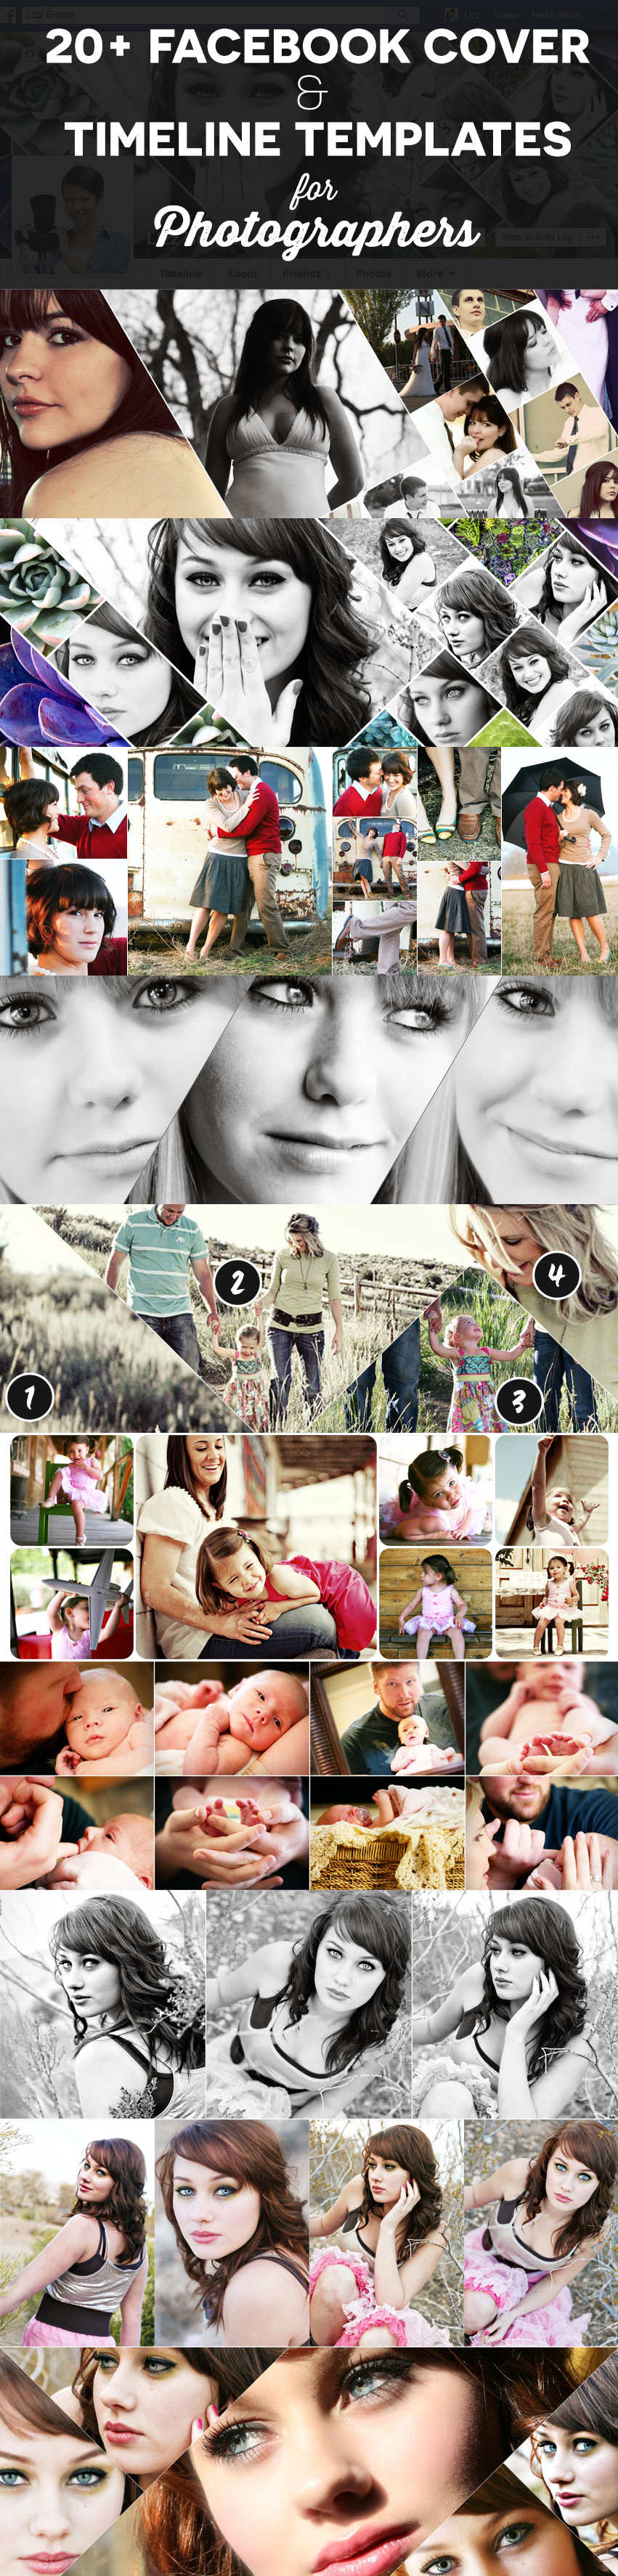 20 Facebook Cover Templates Timeline Photo Collage Templates For